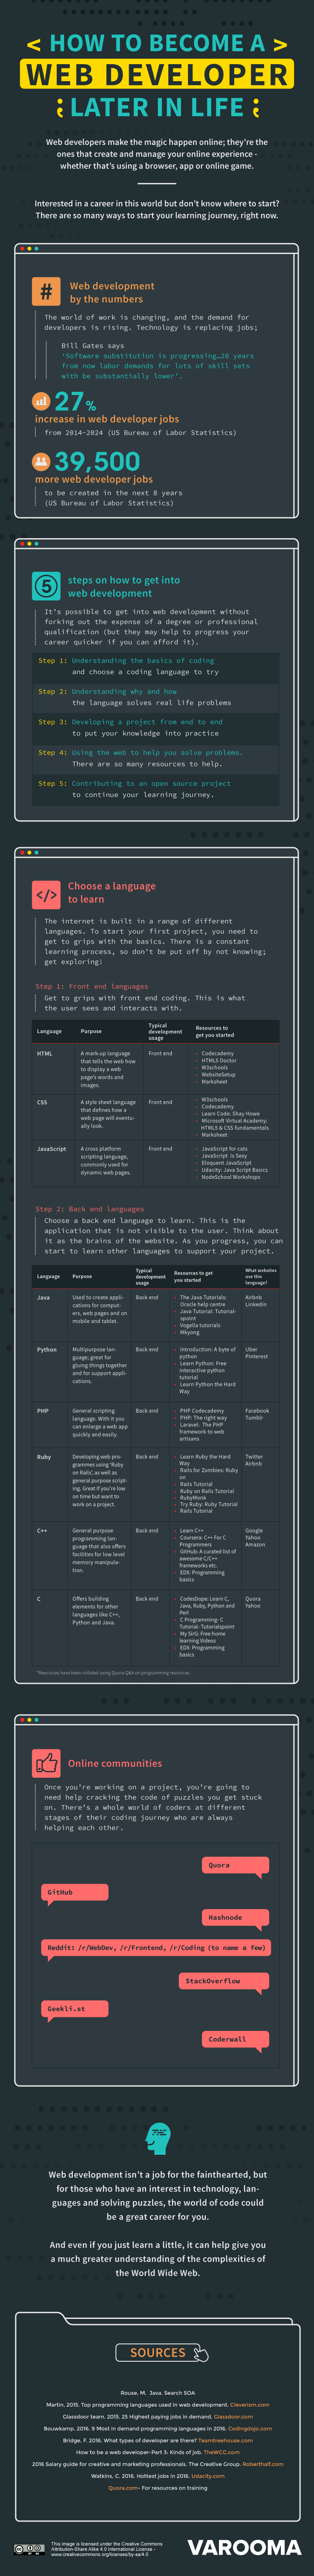 How to Become a Web Developer Later in Life - #Infographic